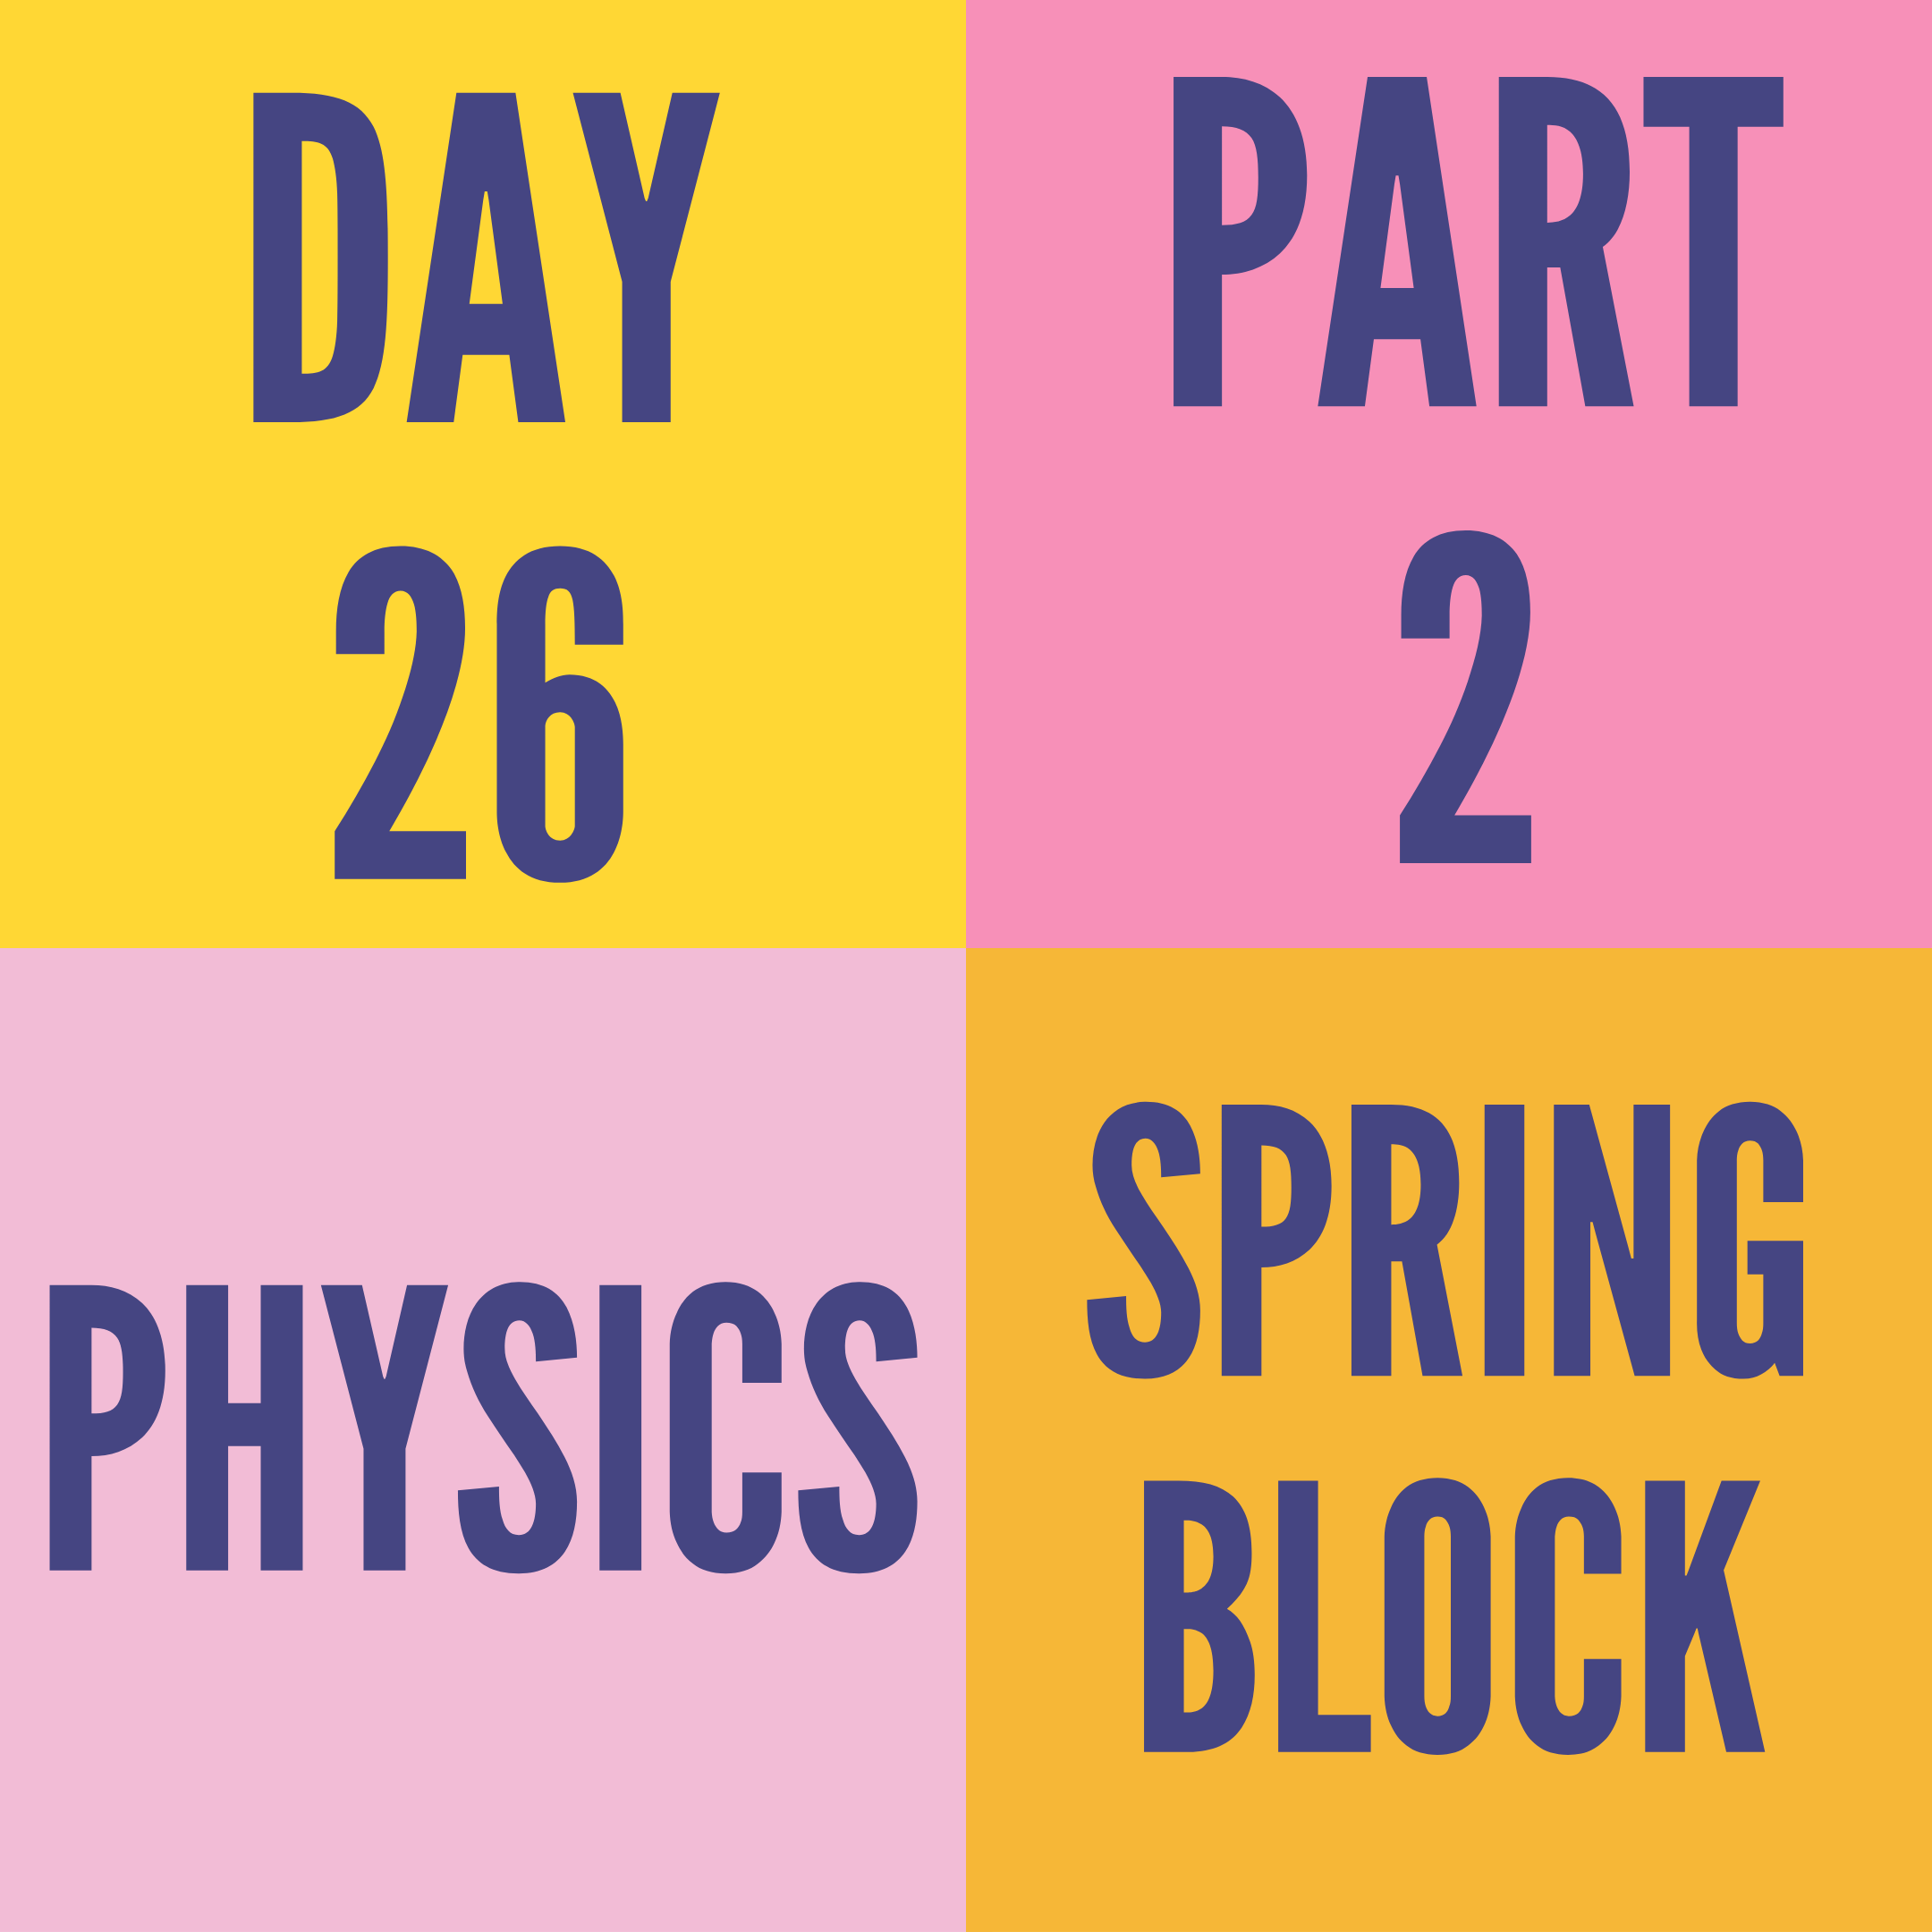 DAY-26 PART-2 SPRING BLOCK